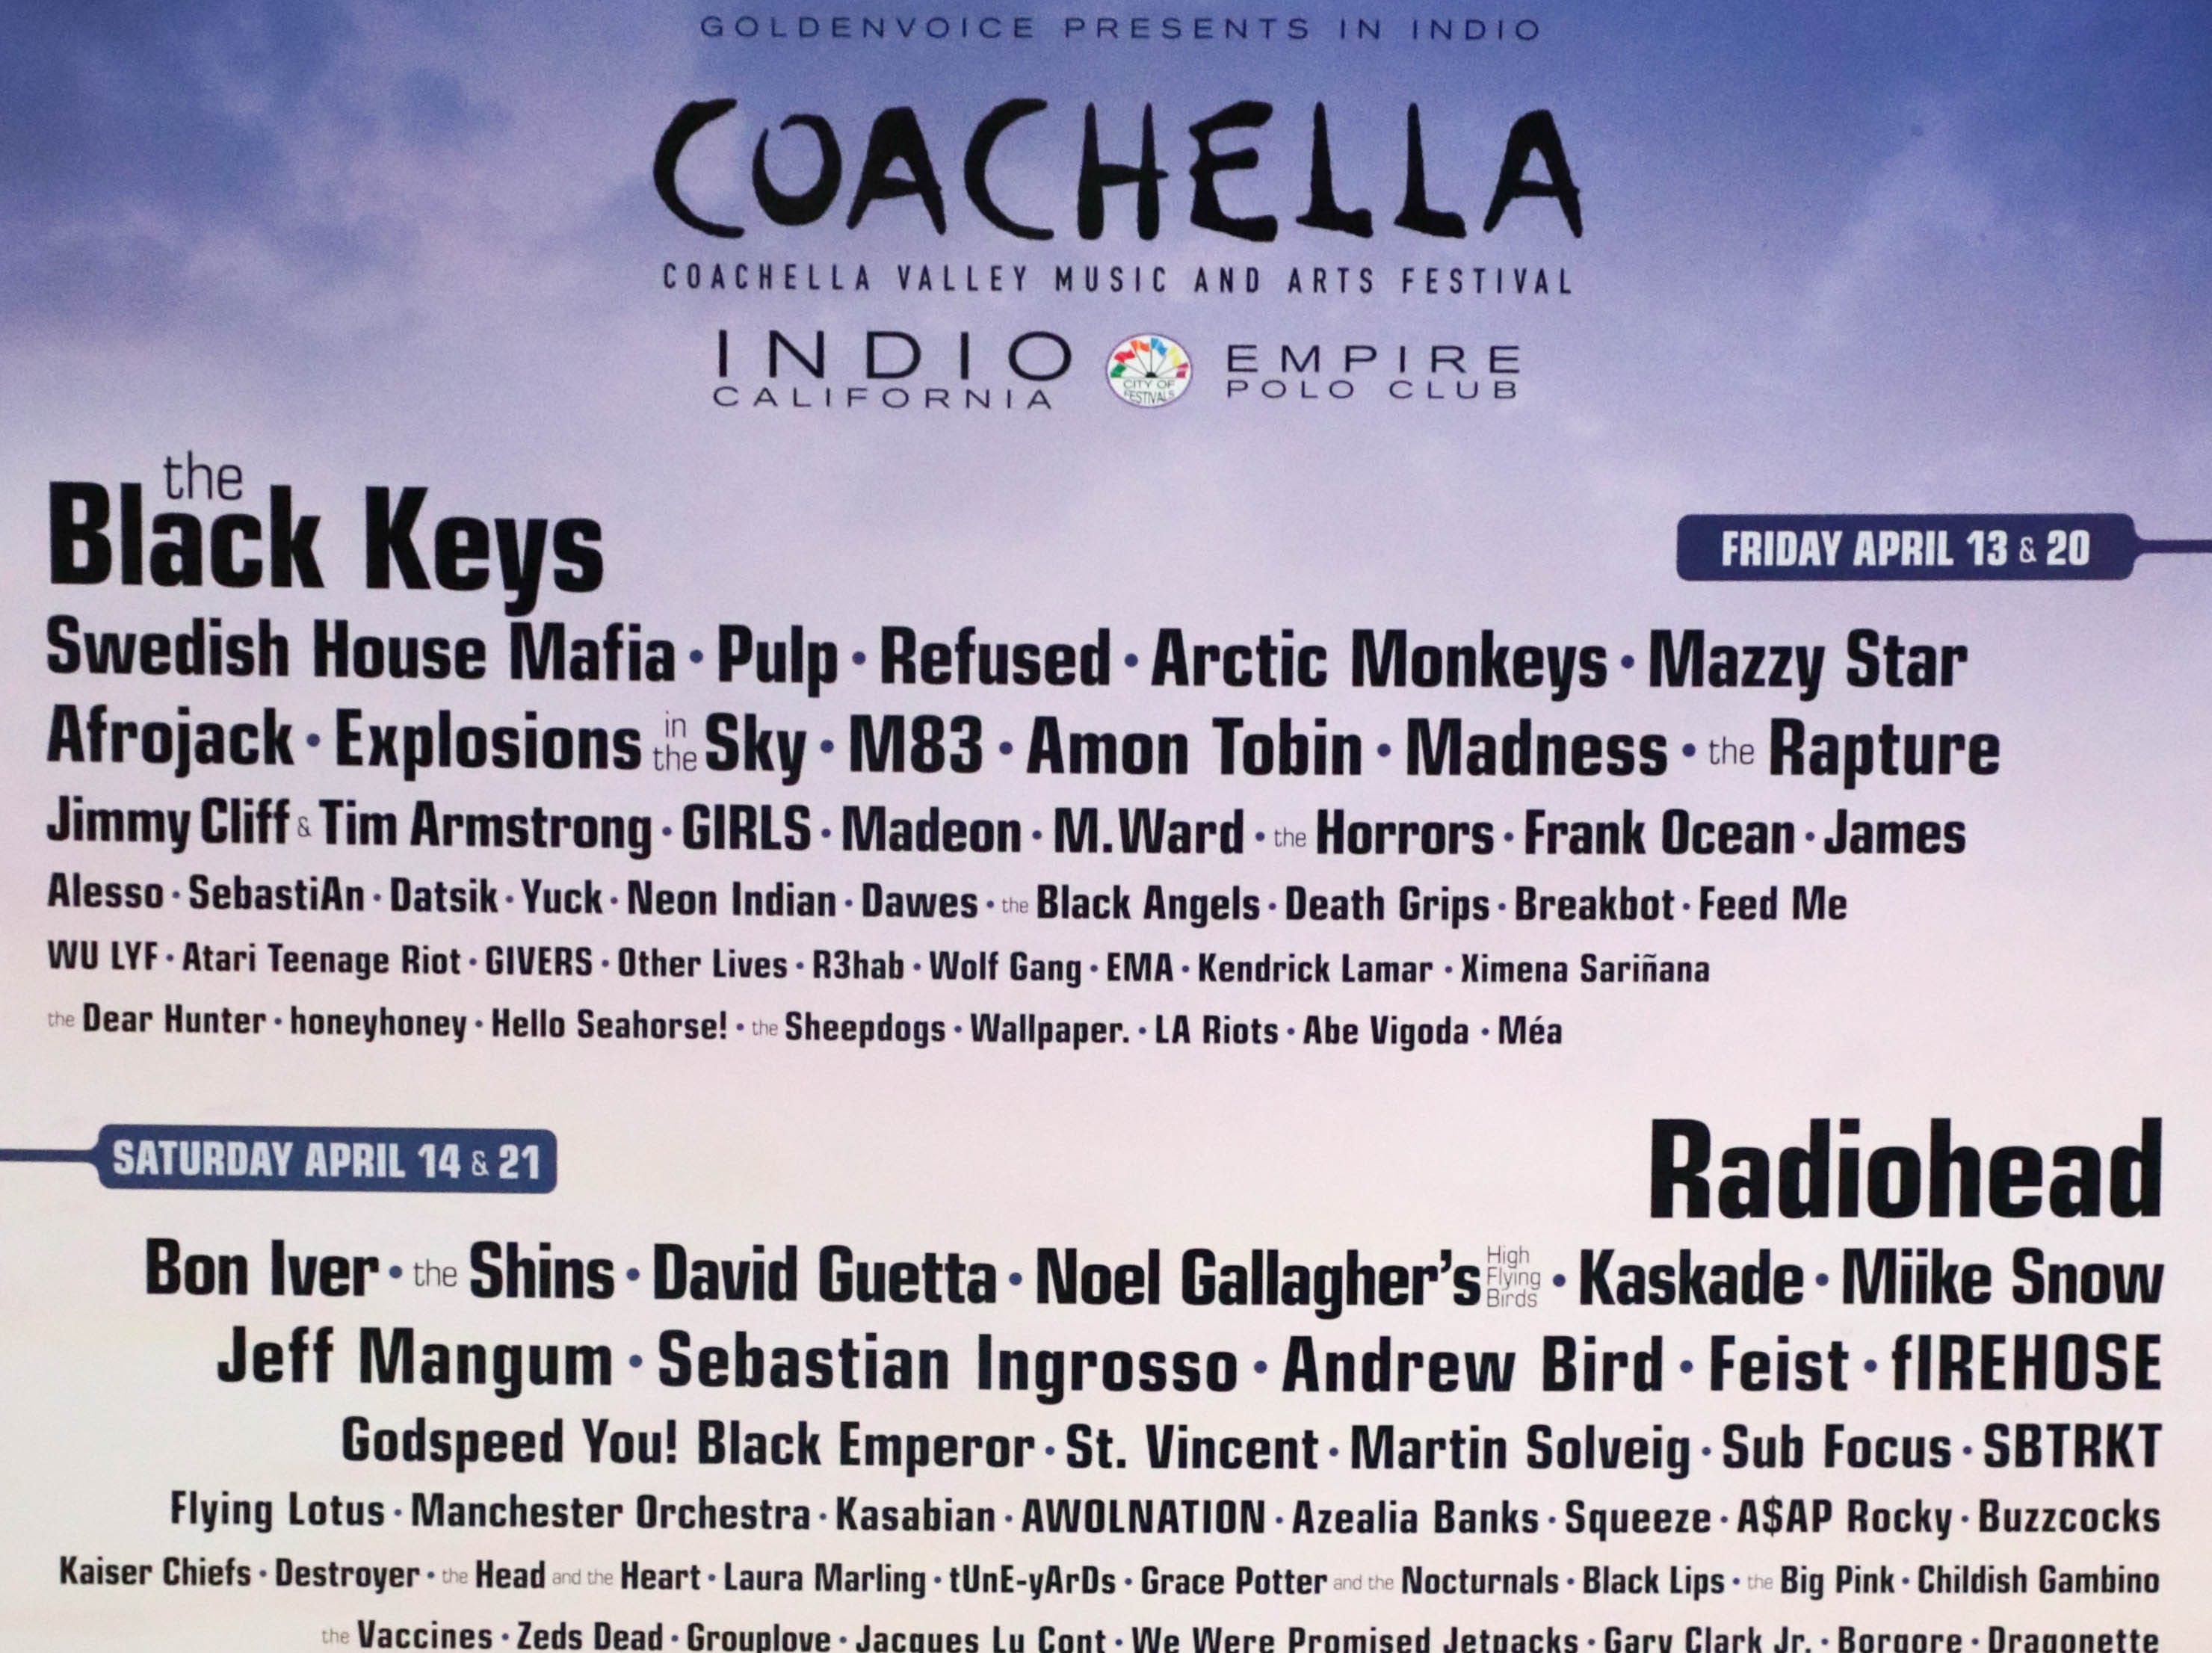 Coachella Valley Music and Arts Festival poster 2012